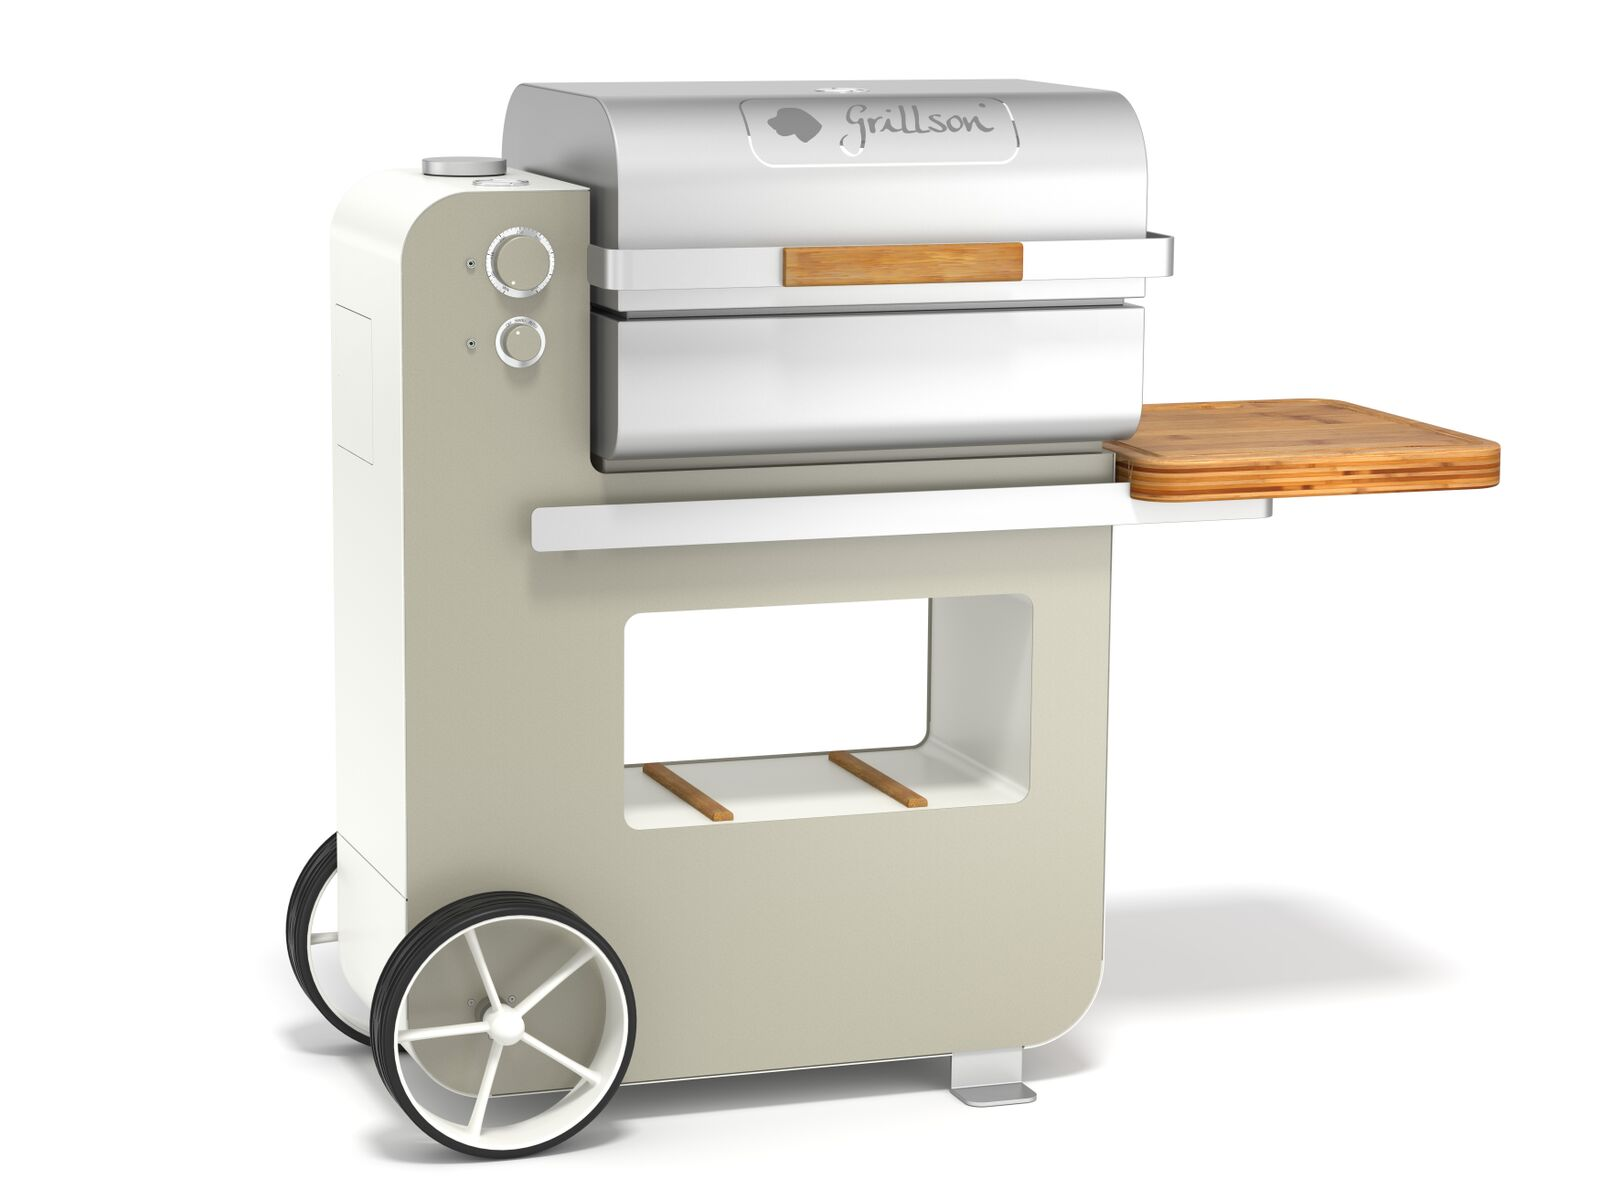 Grillson Pellet Smokers Contemporary Design